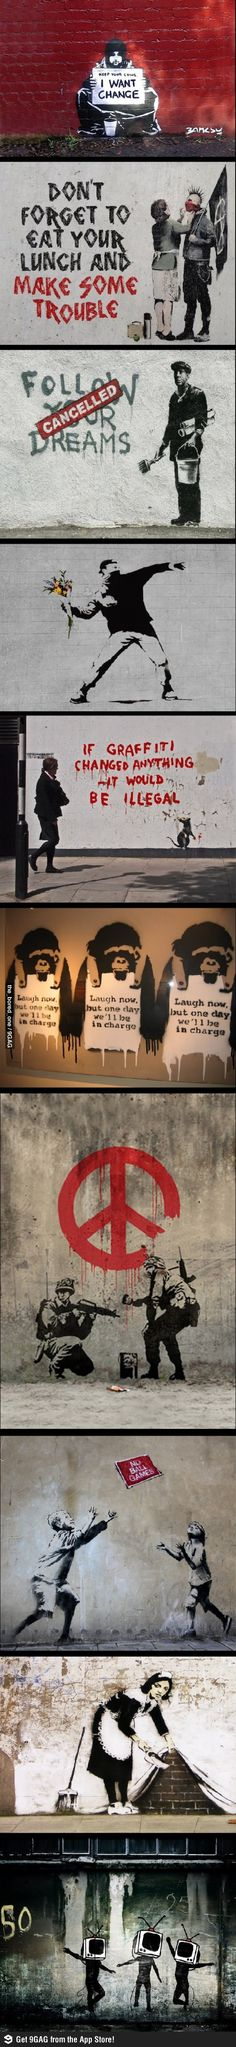 #Banksy | the one and only